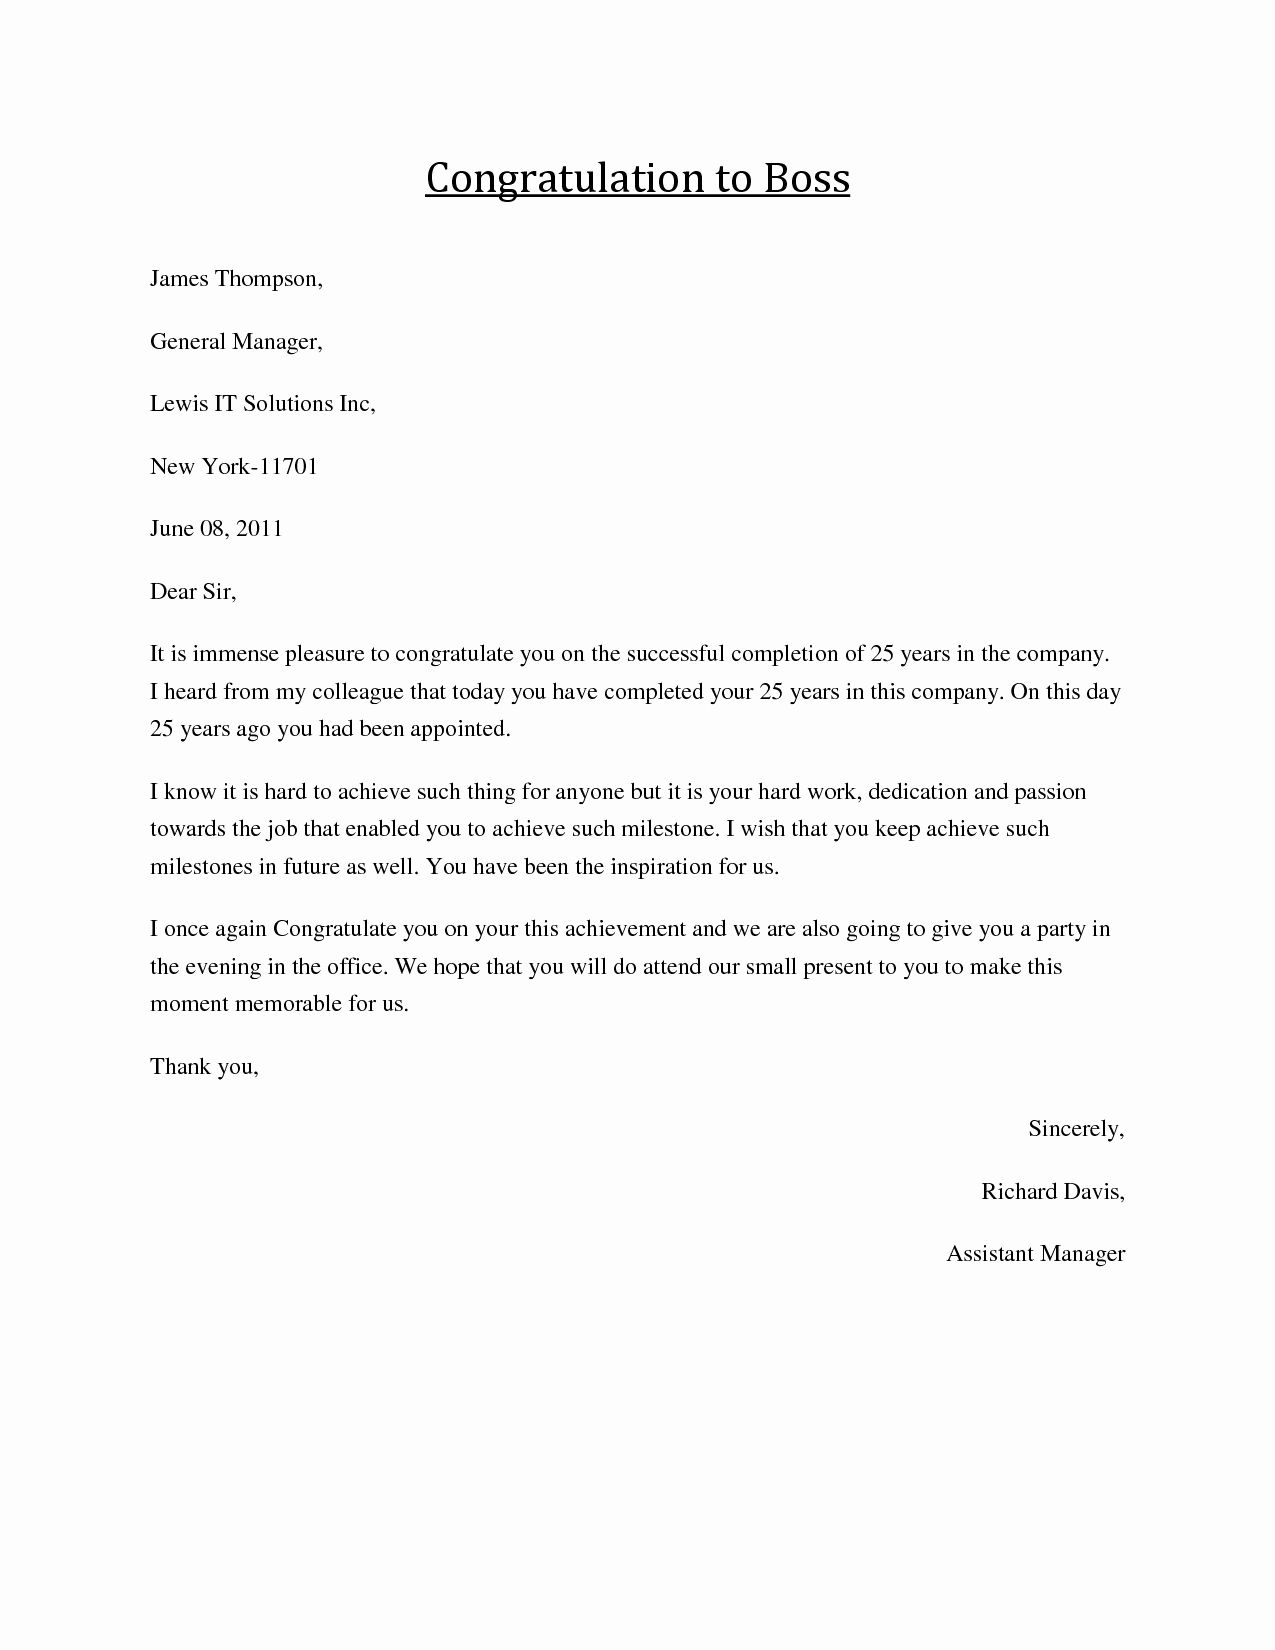 Boss Day Messages Sample In 2020 Formal Business Letter